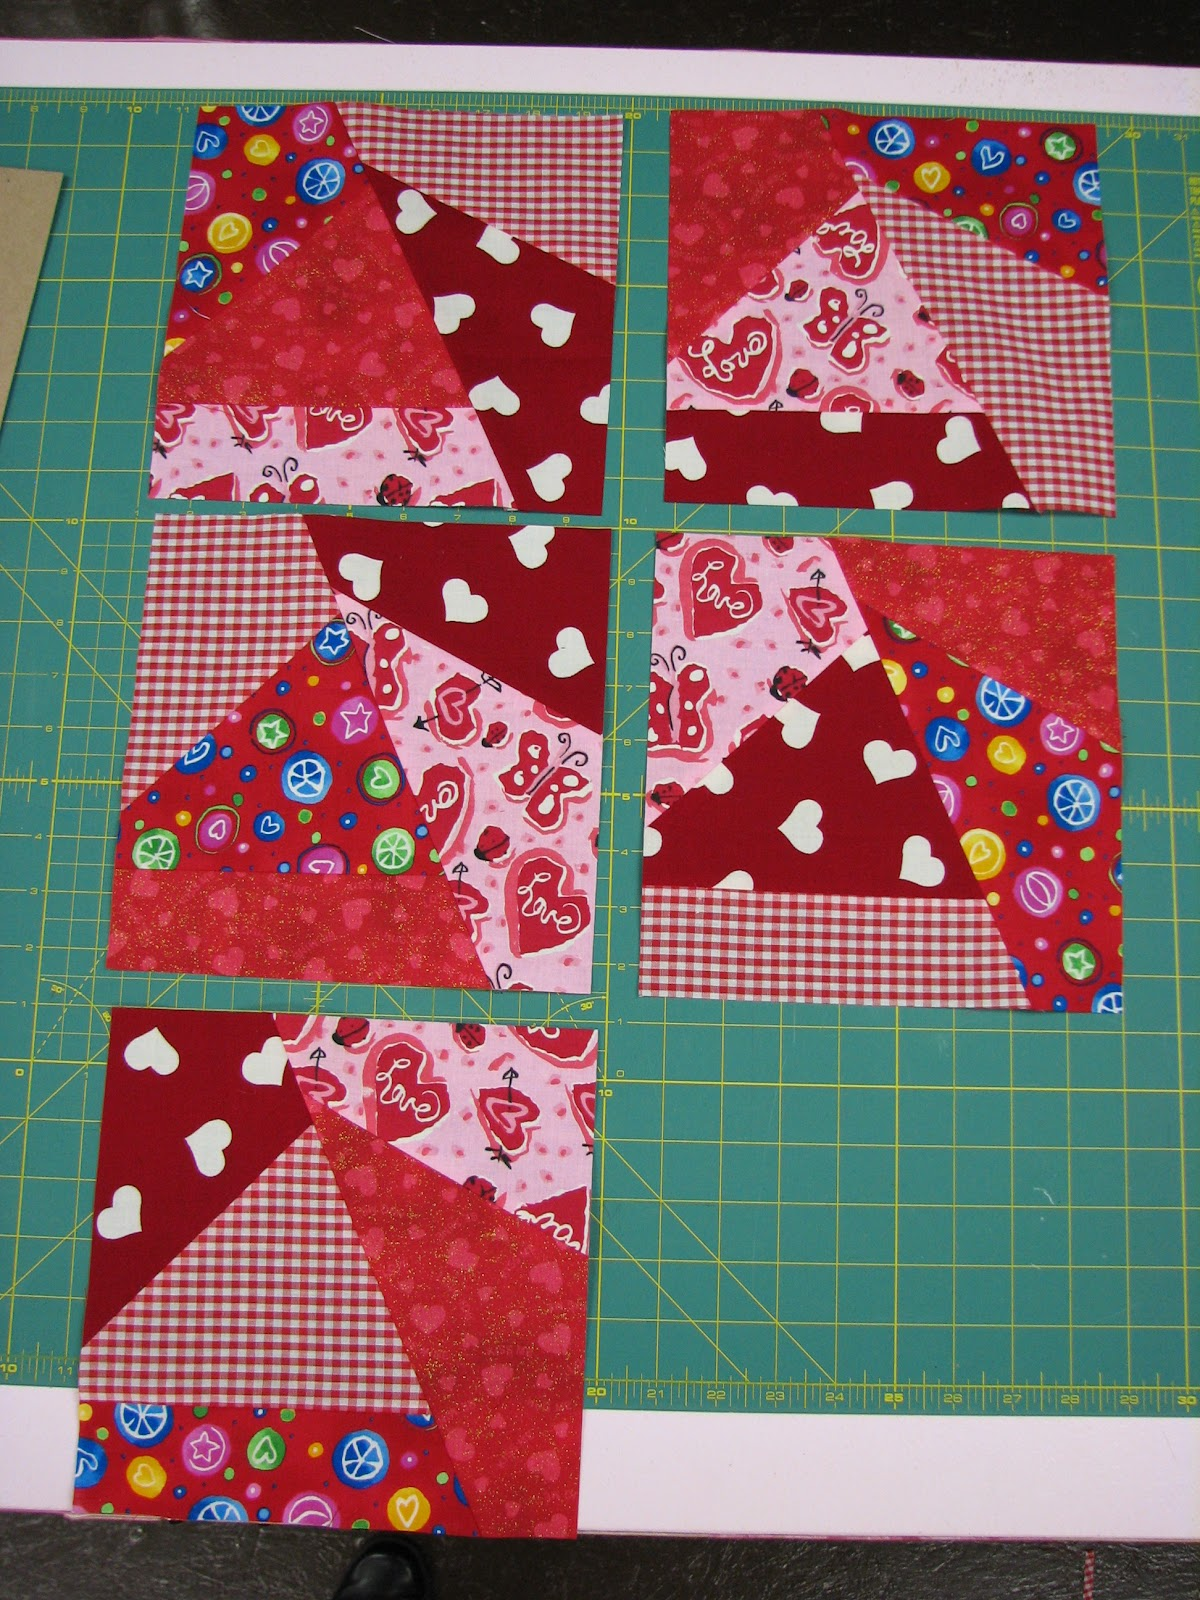 Ms Elaineous Teaches Sewing Crazy Quilt Block